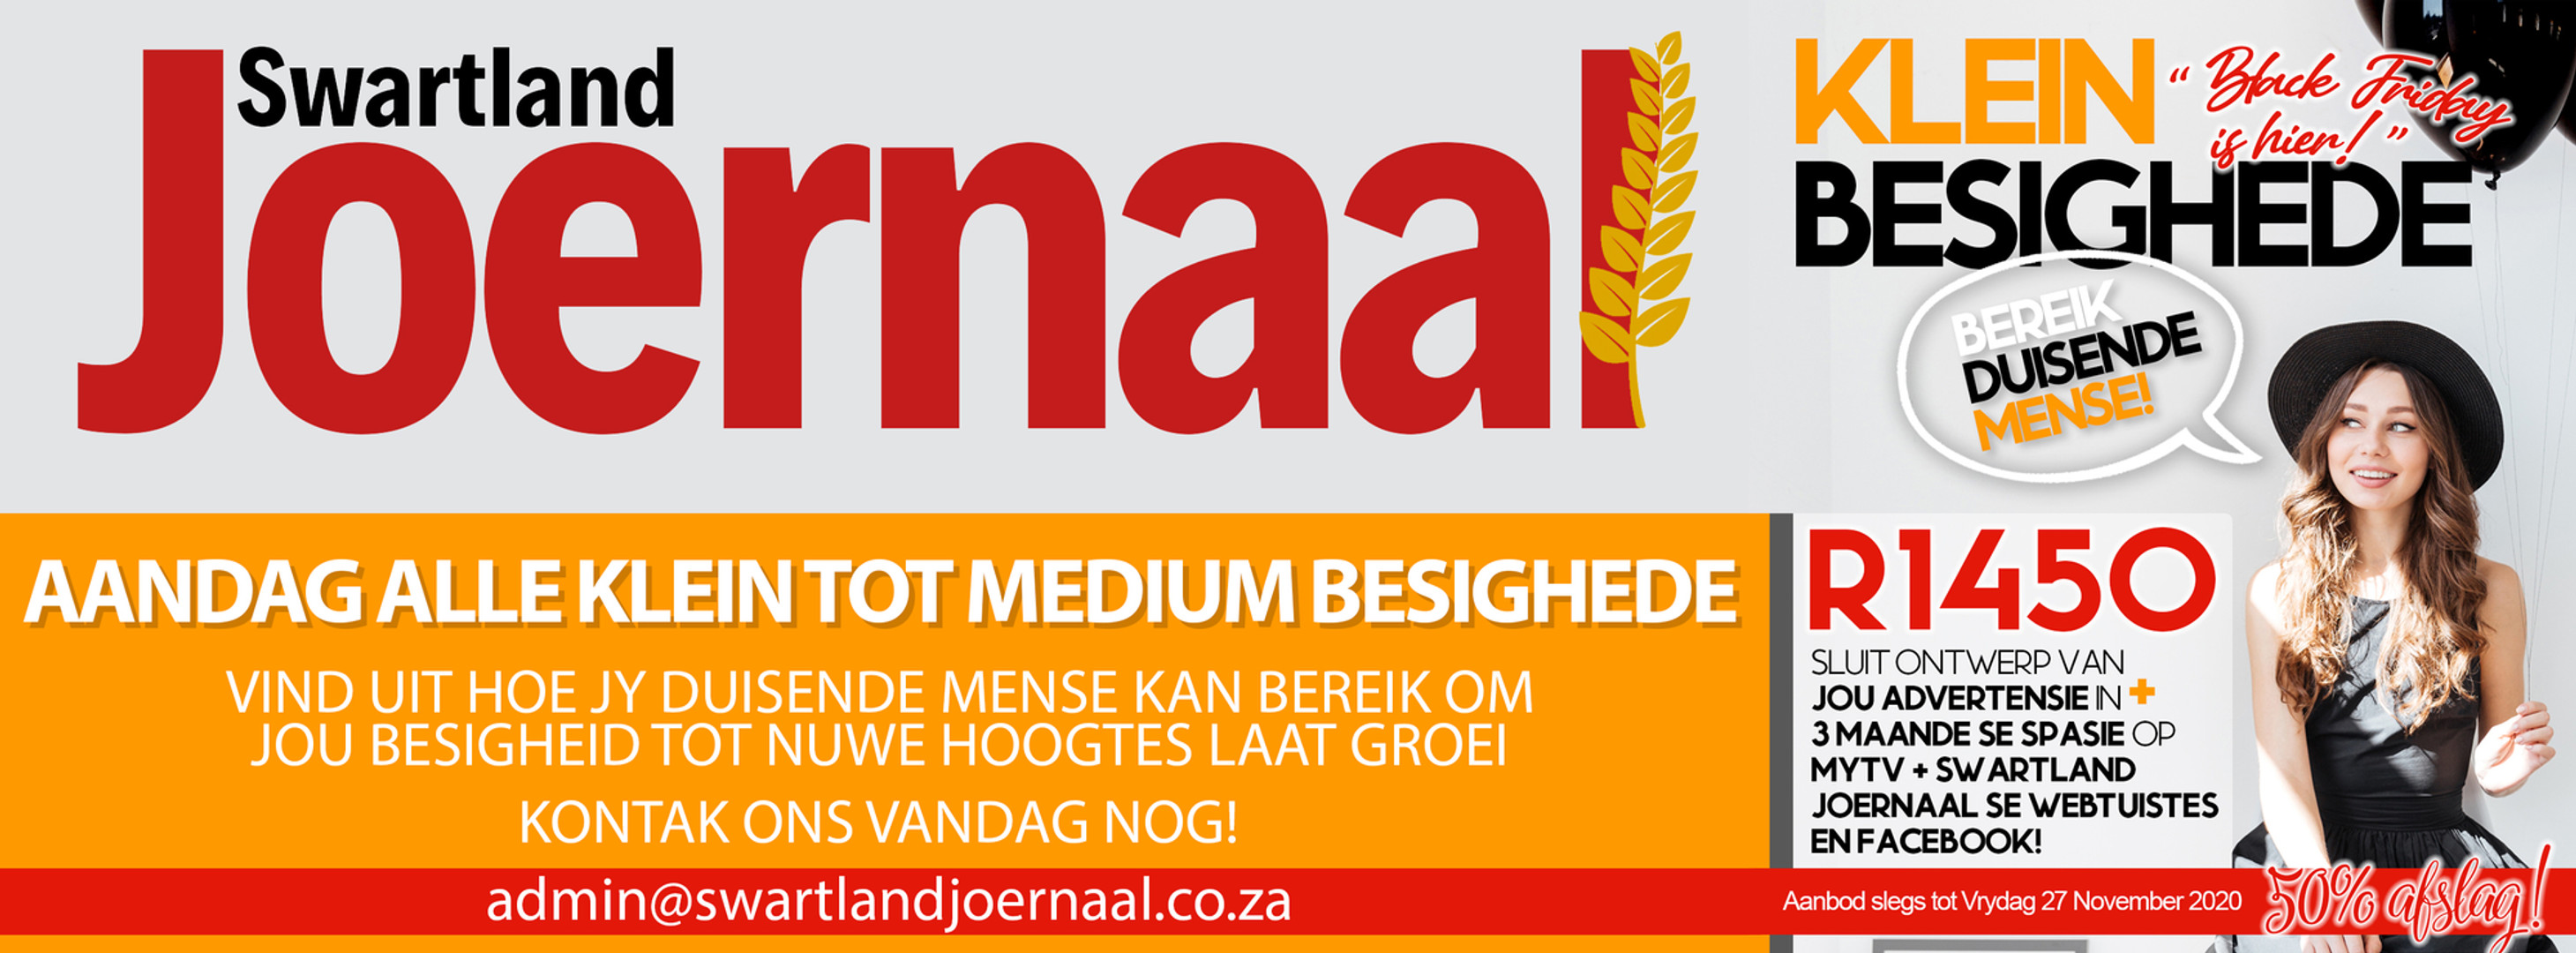 SWARTLAND ADVERTENSIE